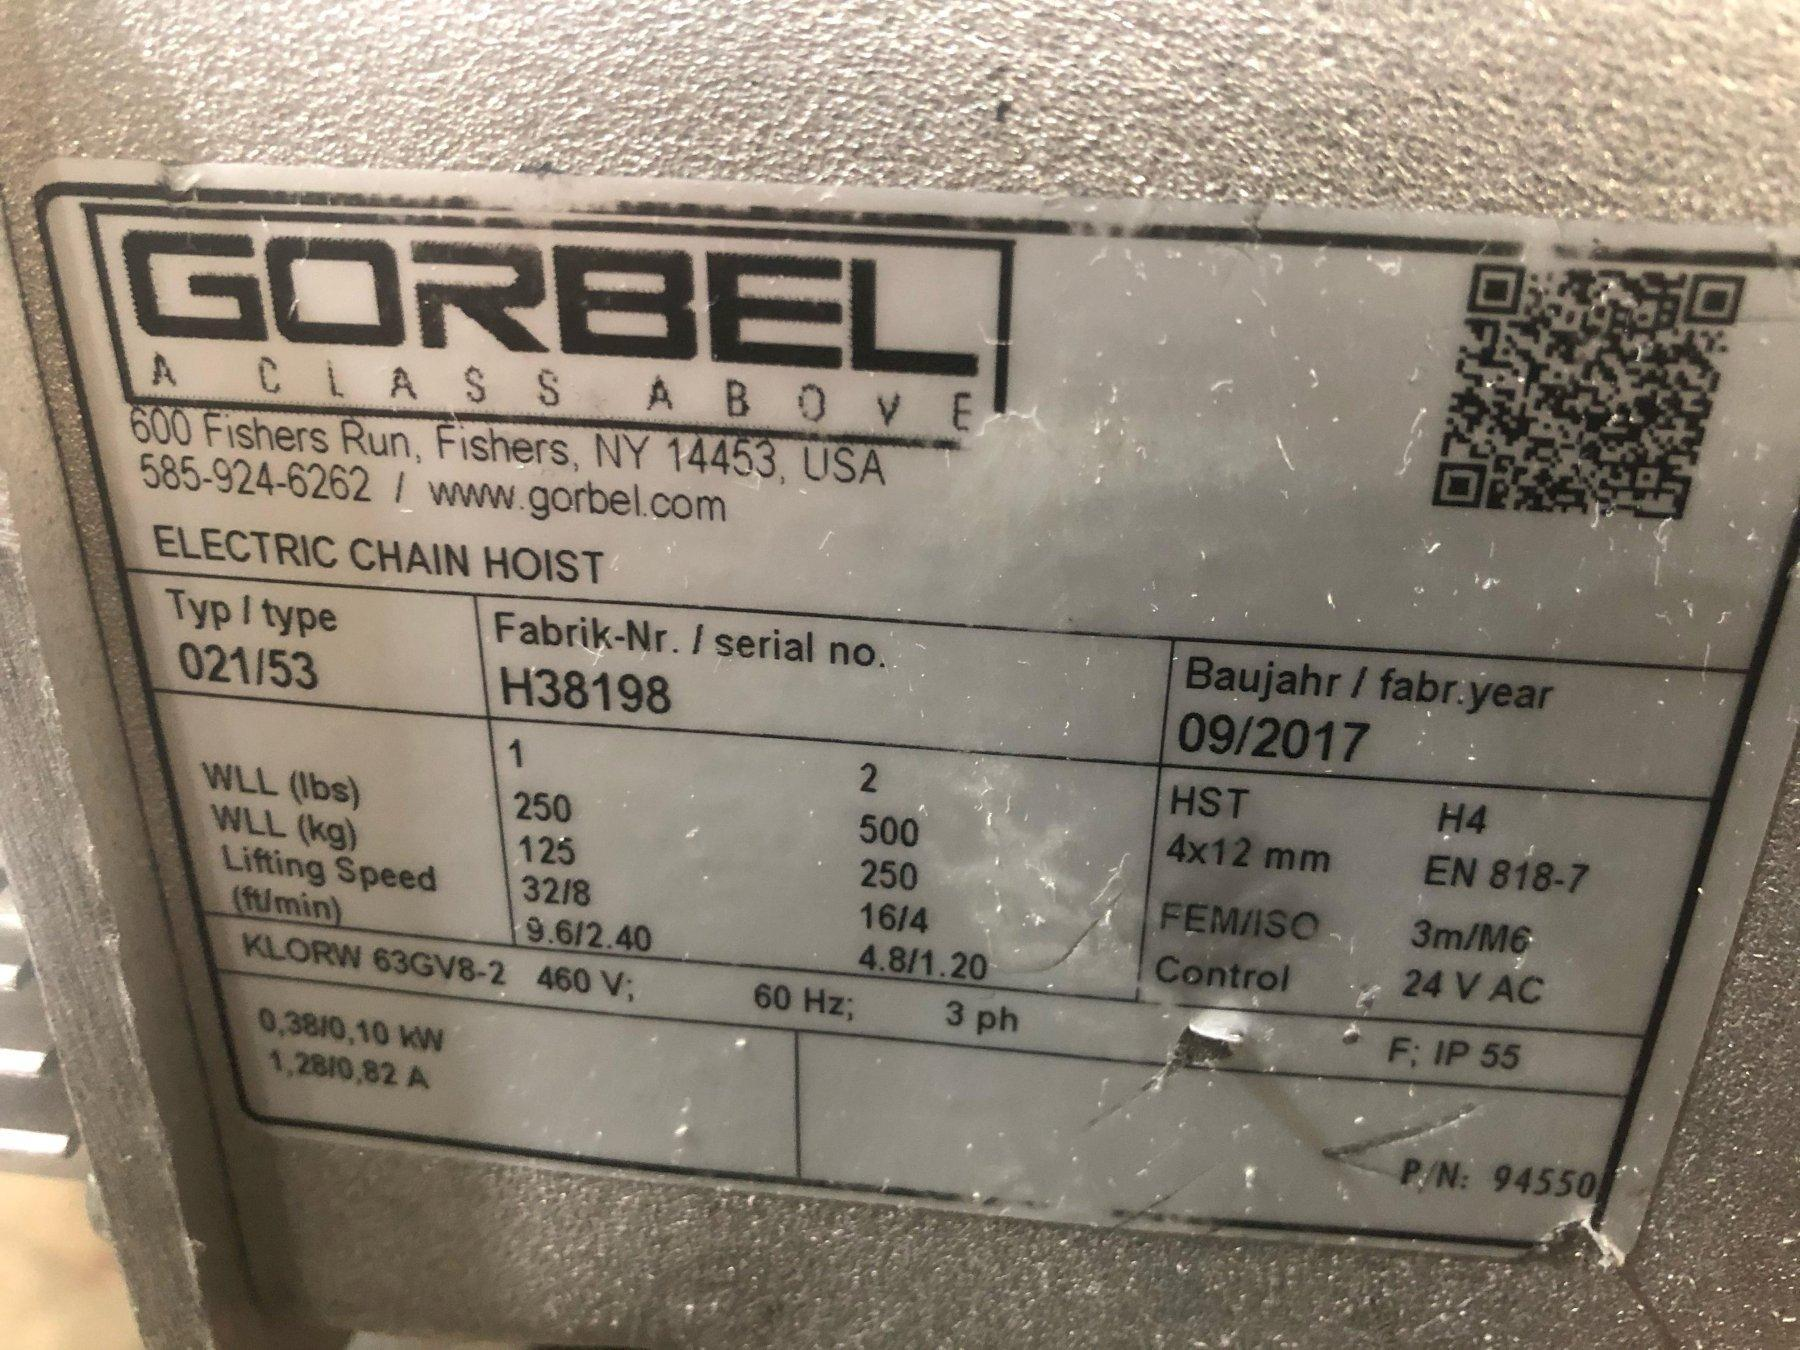 1/4 TON GORBEL ELECTRIC CHAIN HOIST: STOCK #13936